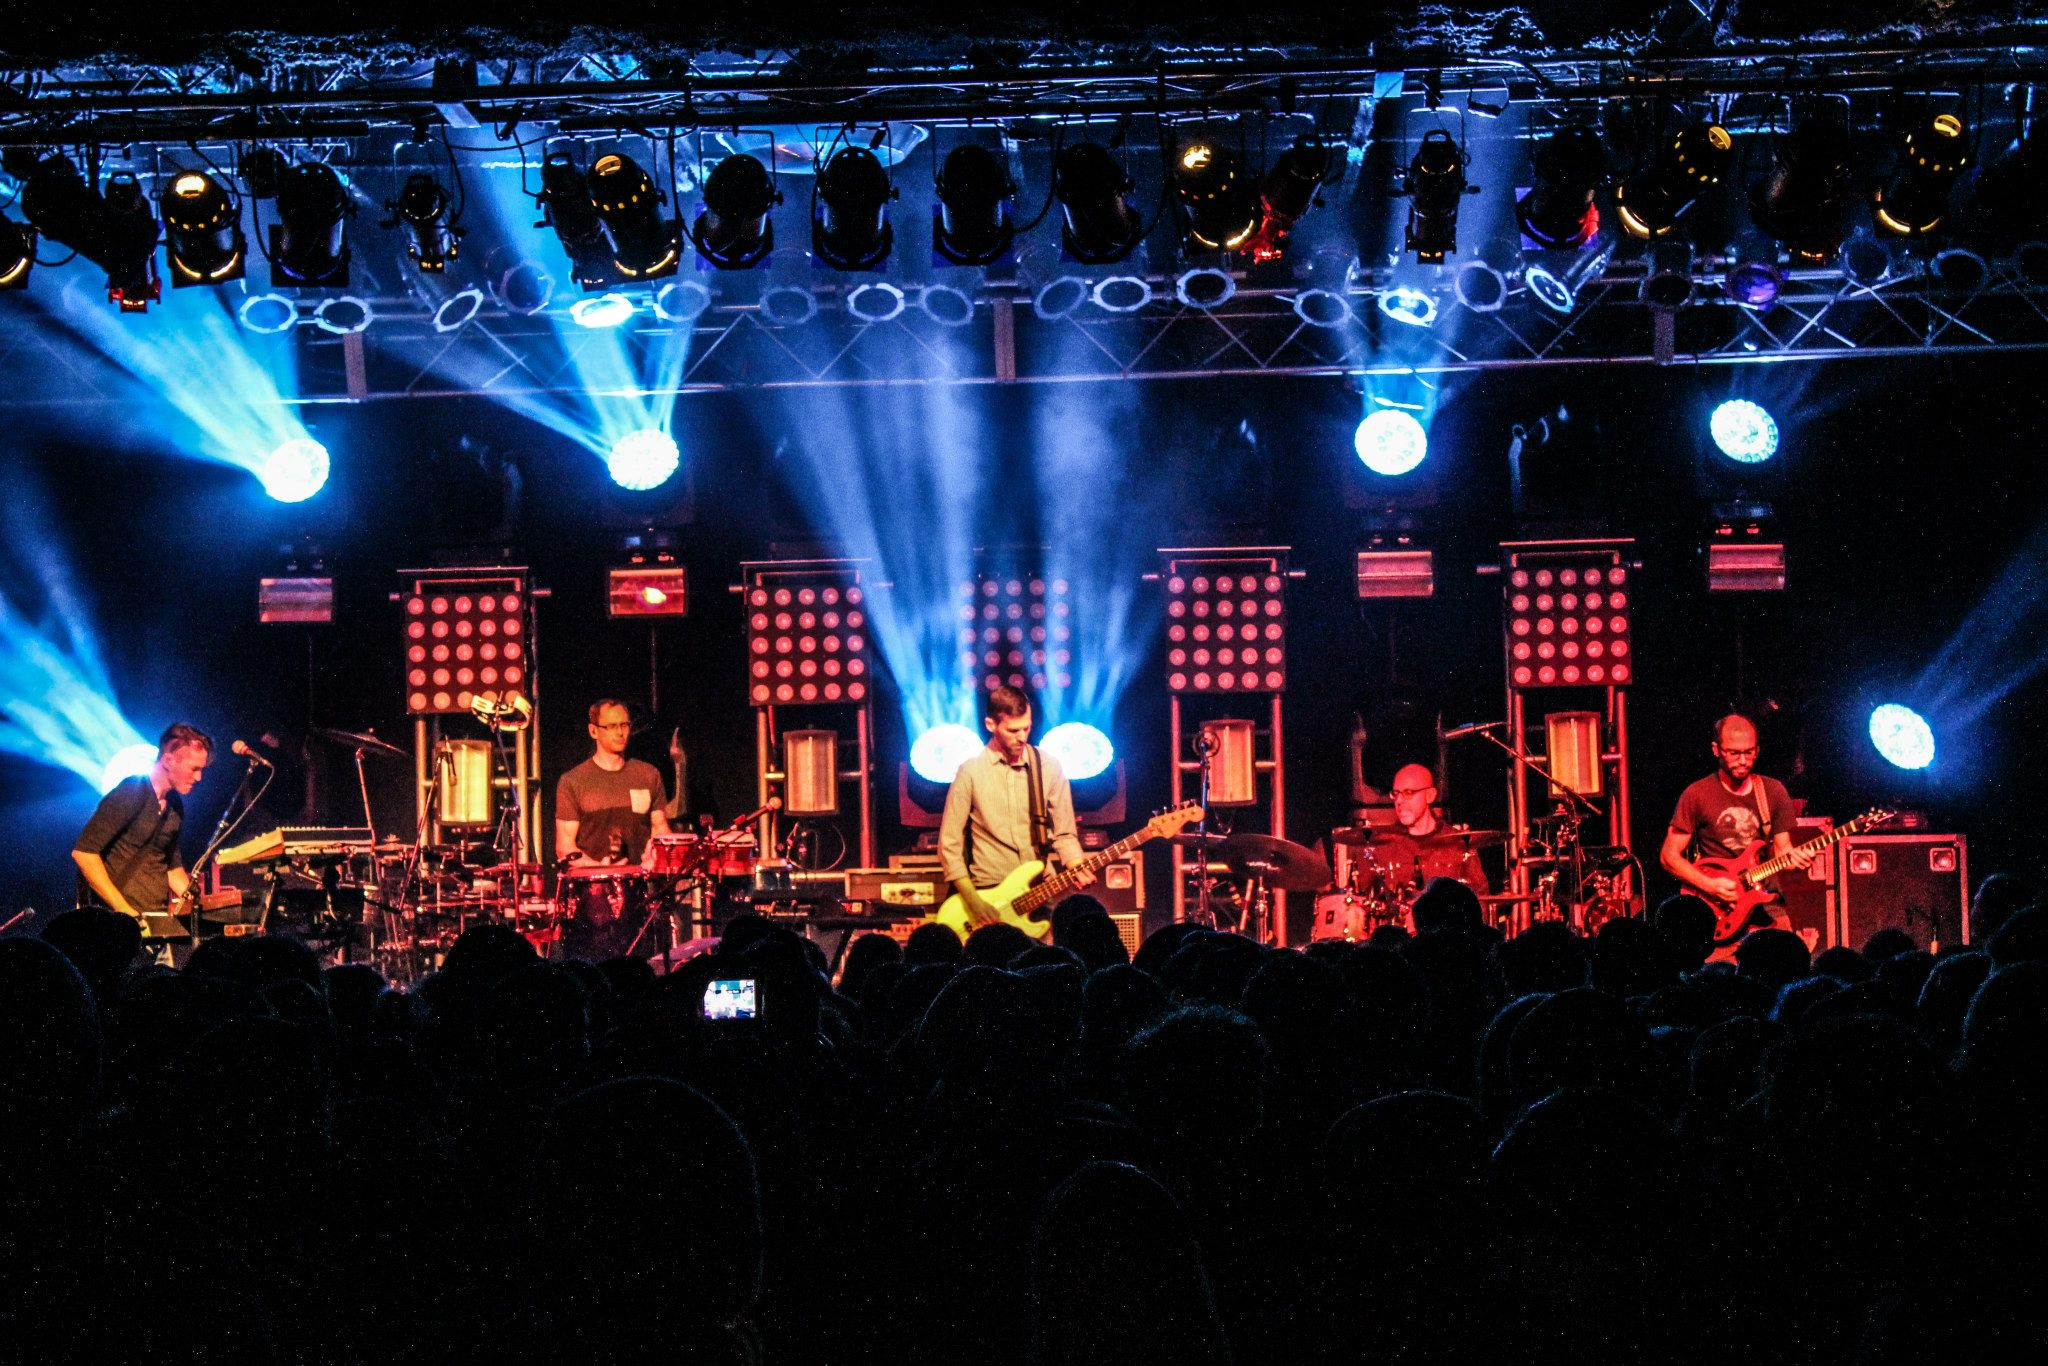 Review of Lotus at Higher Ground Ballroom Jan 28, 2015